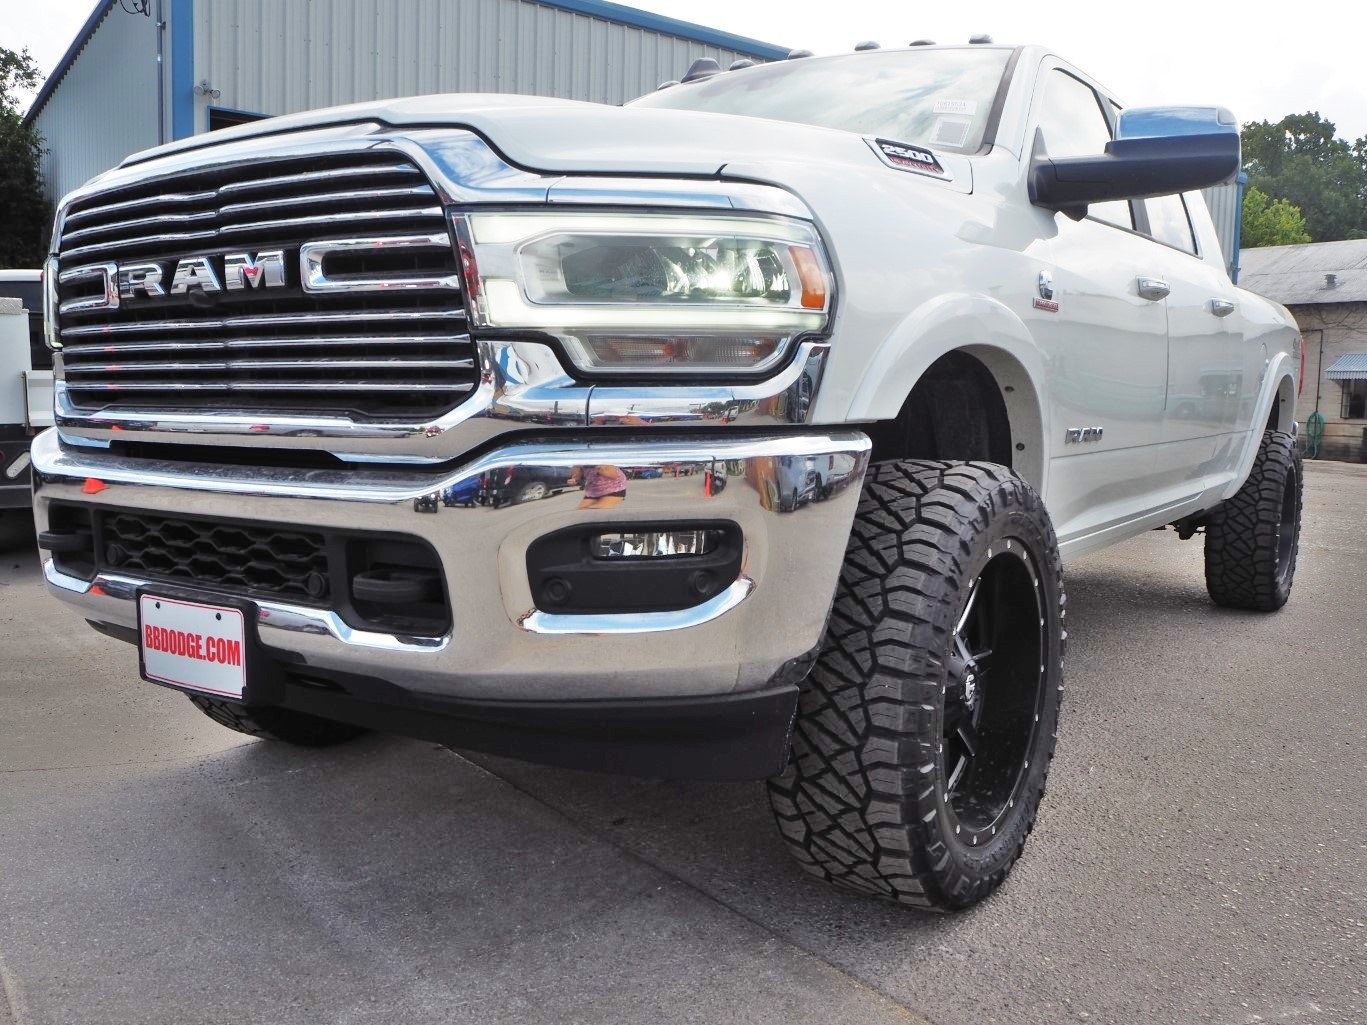 New 2019 Ram 2500 For Sale in New Braunfels, TX | 3C6UR5NL0KG619534